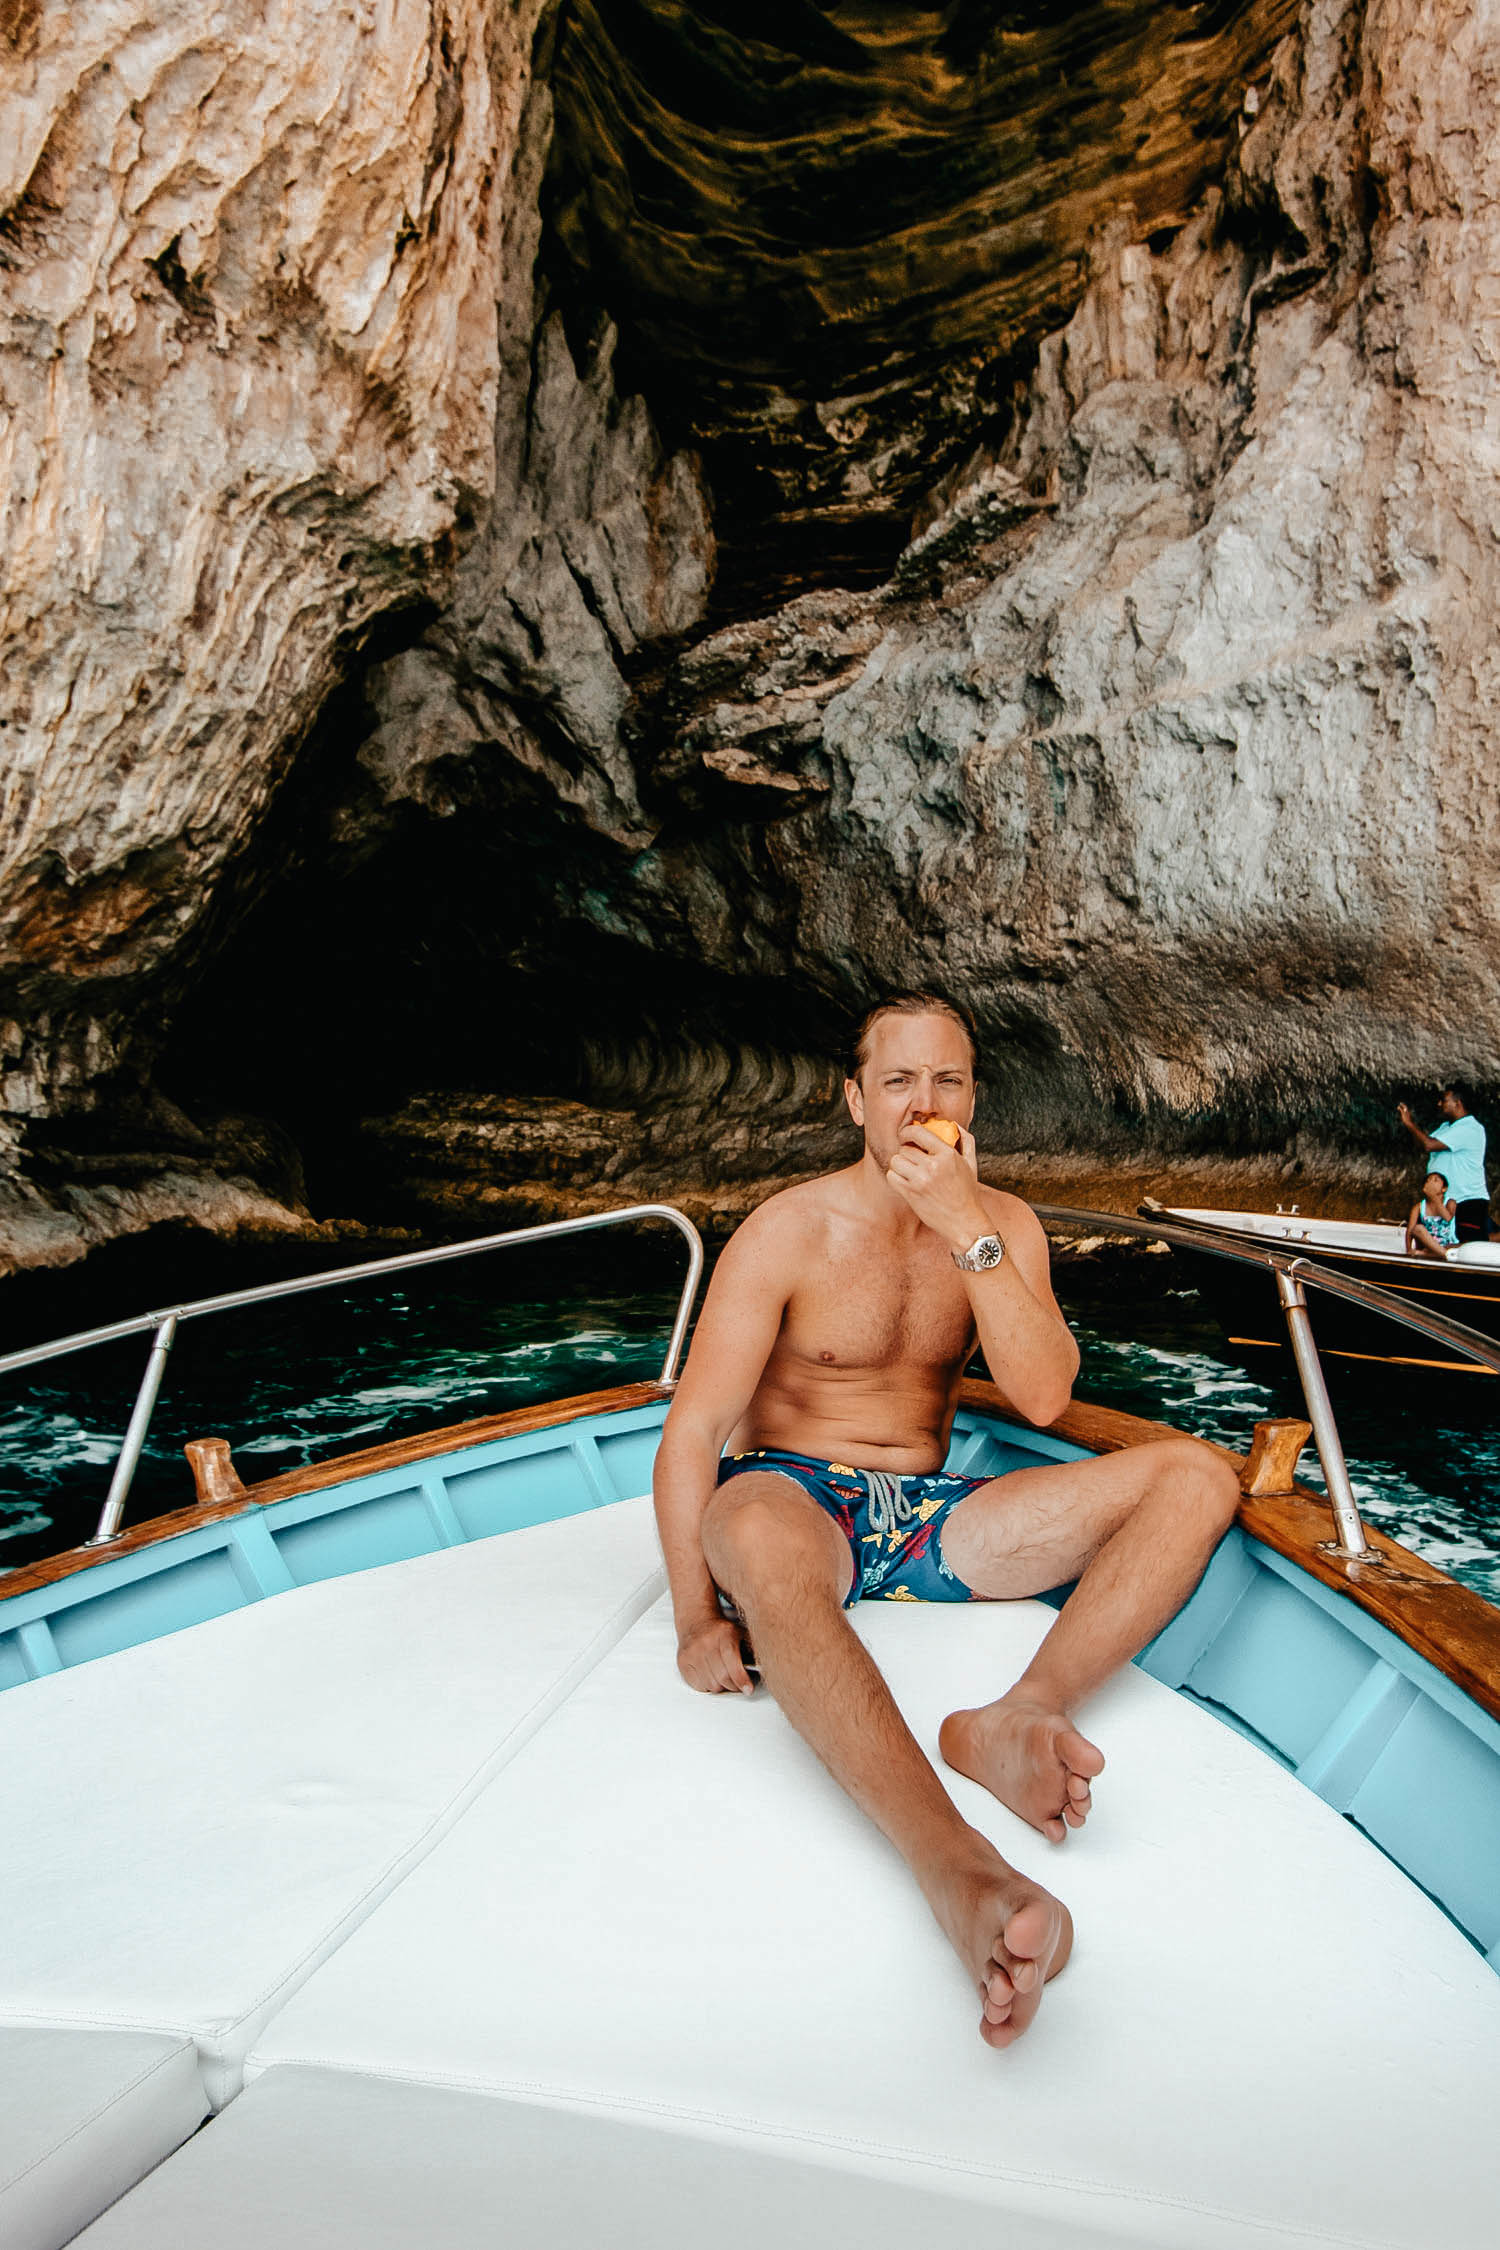 GUSTAF ON A BOAT IN CAPRI, ITALY